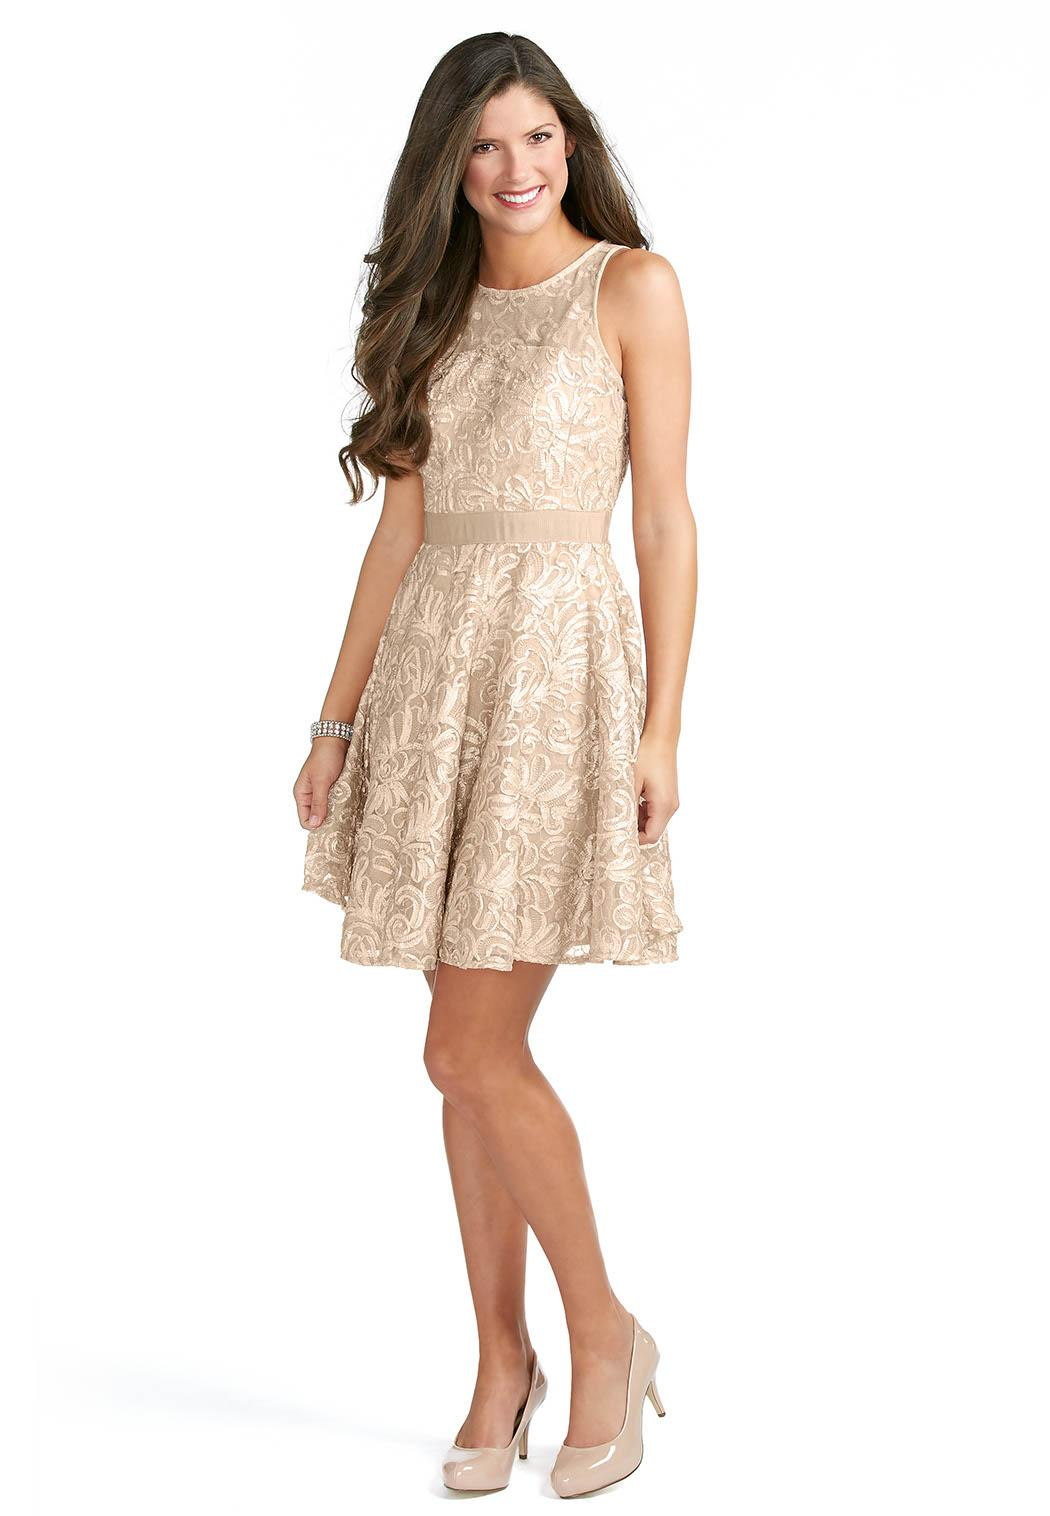 Catofashions.com Dresses Cato Lace Dress